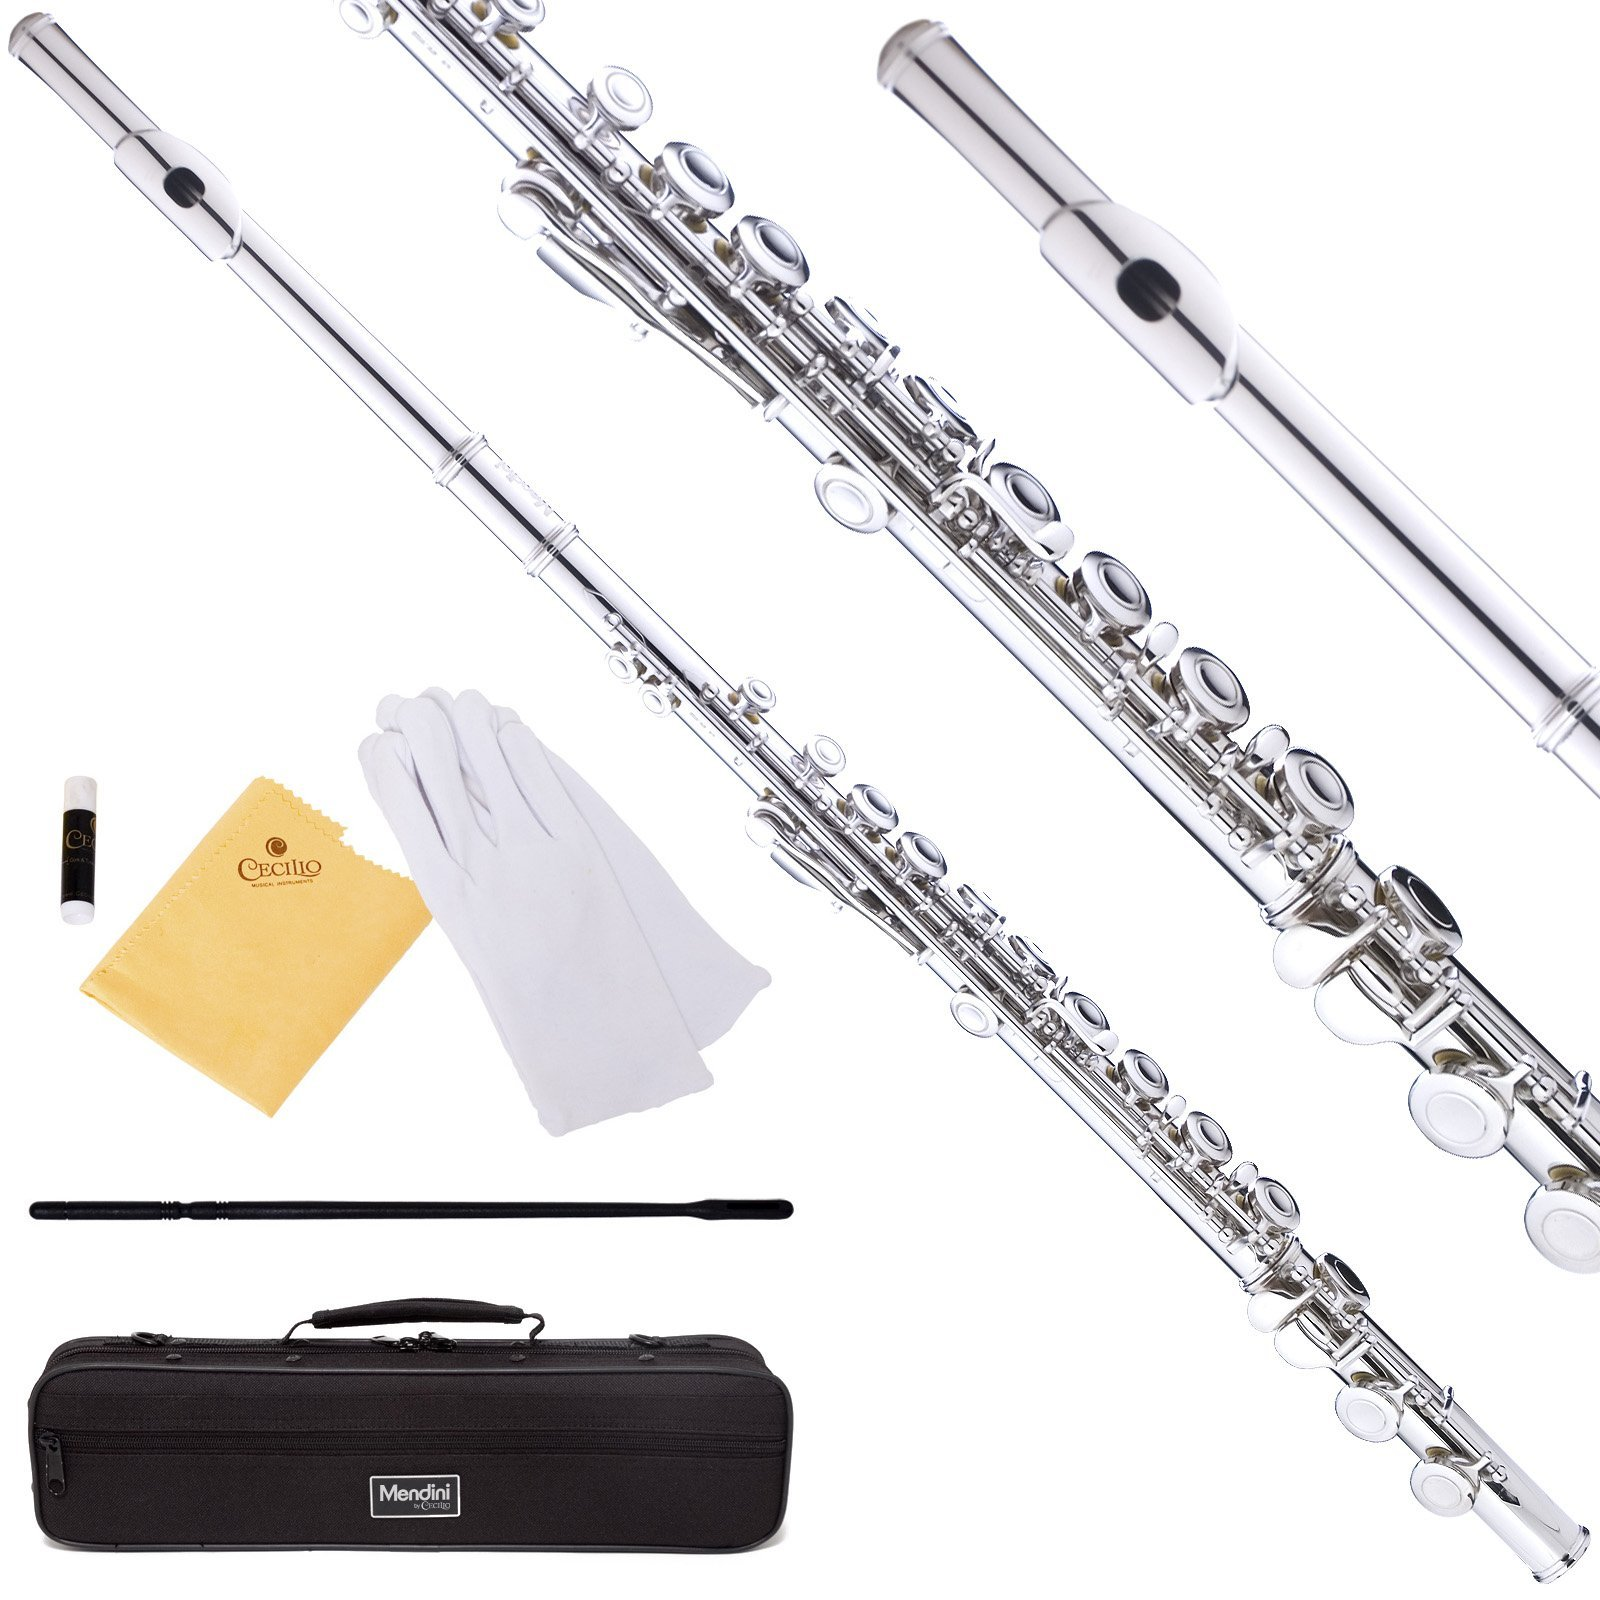 Mendini Closed Hole C Flute with Case, Joint Grease, Cleaning Rod, Cloth, Gloves, and 1-Year Warranty – Nickel Plated, MFE-N